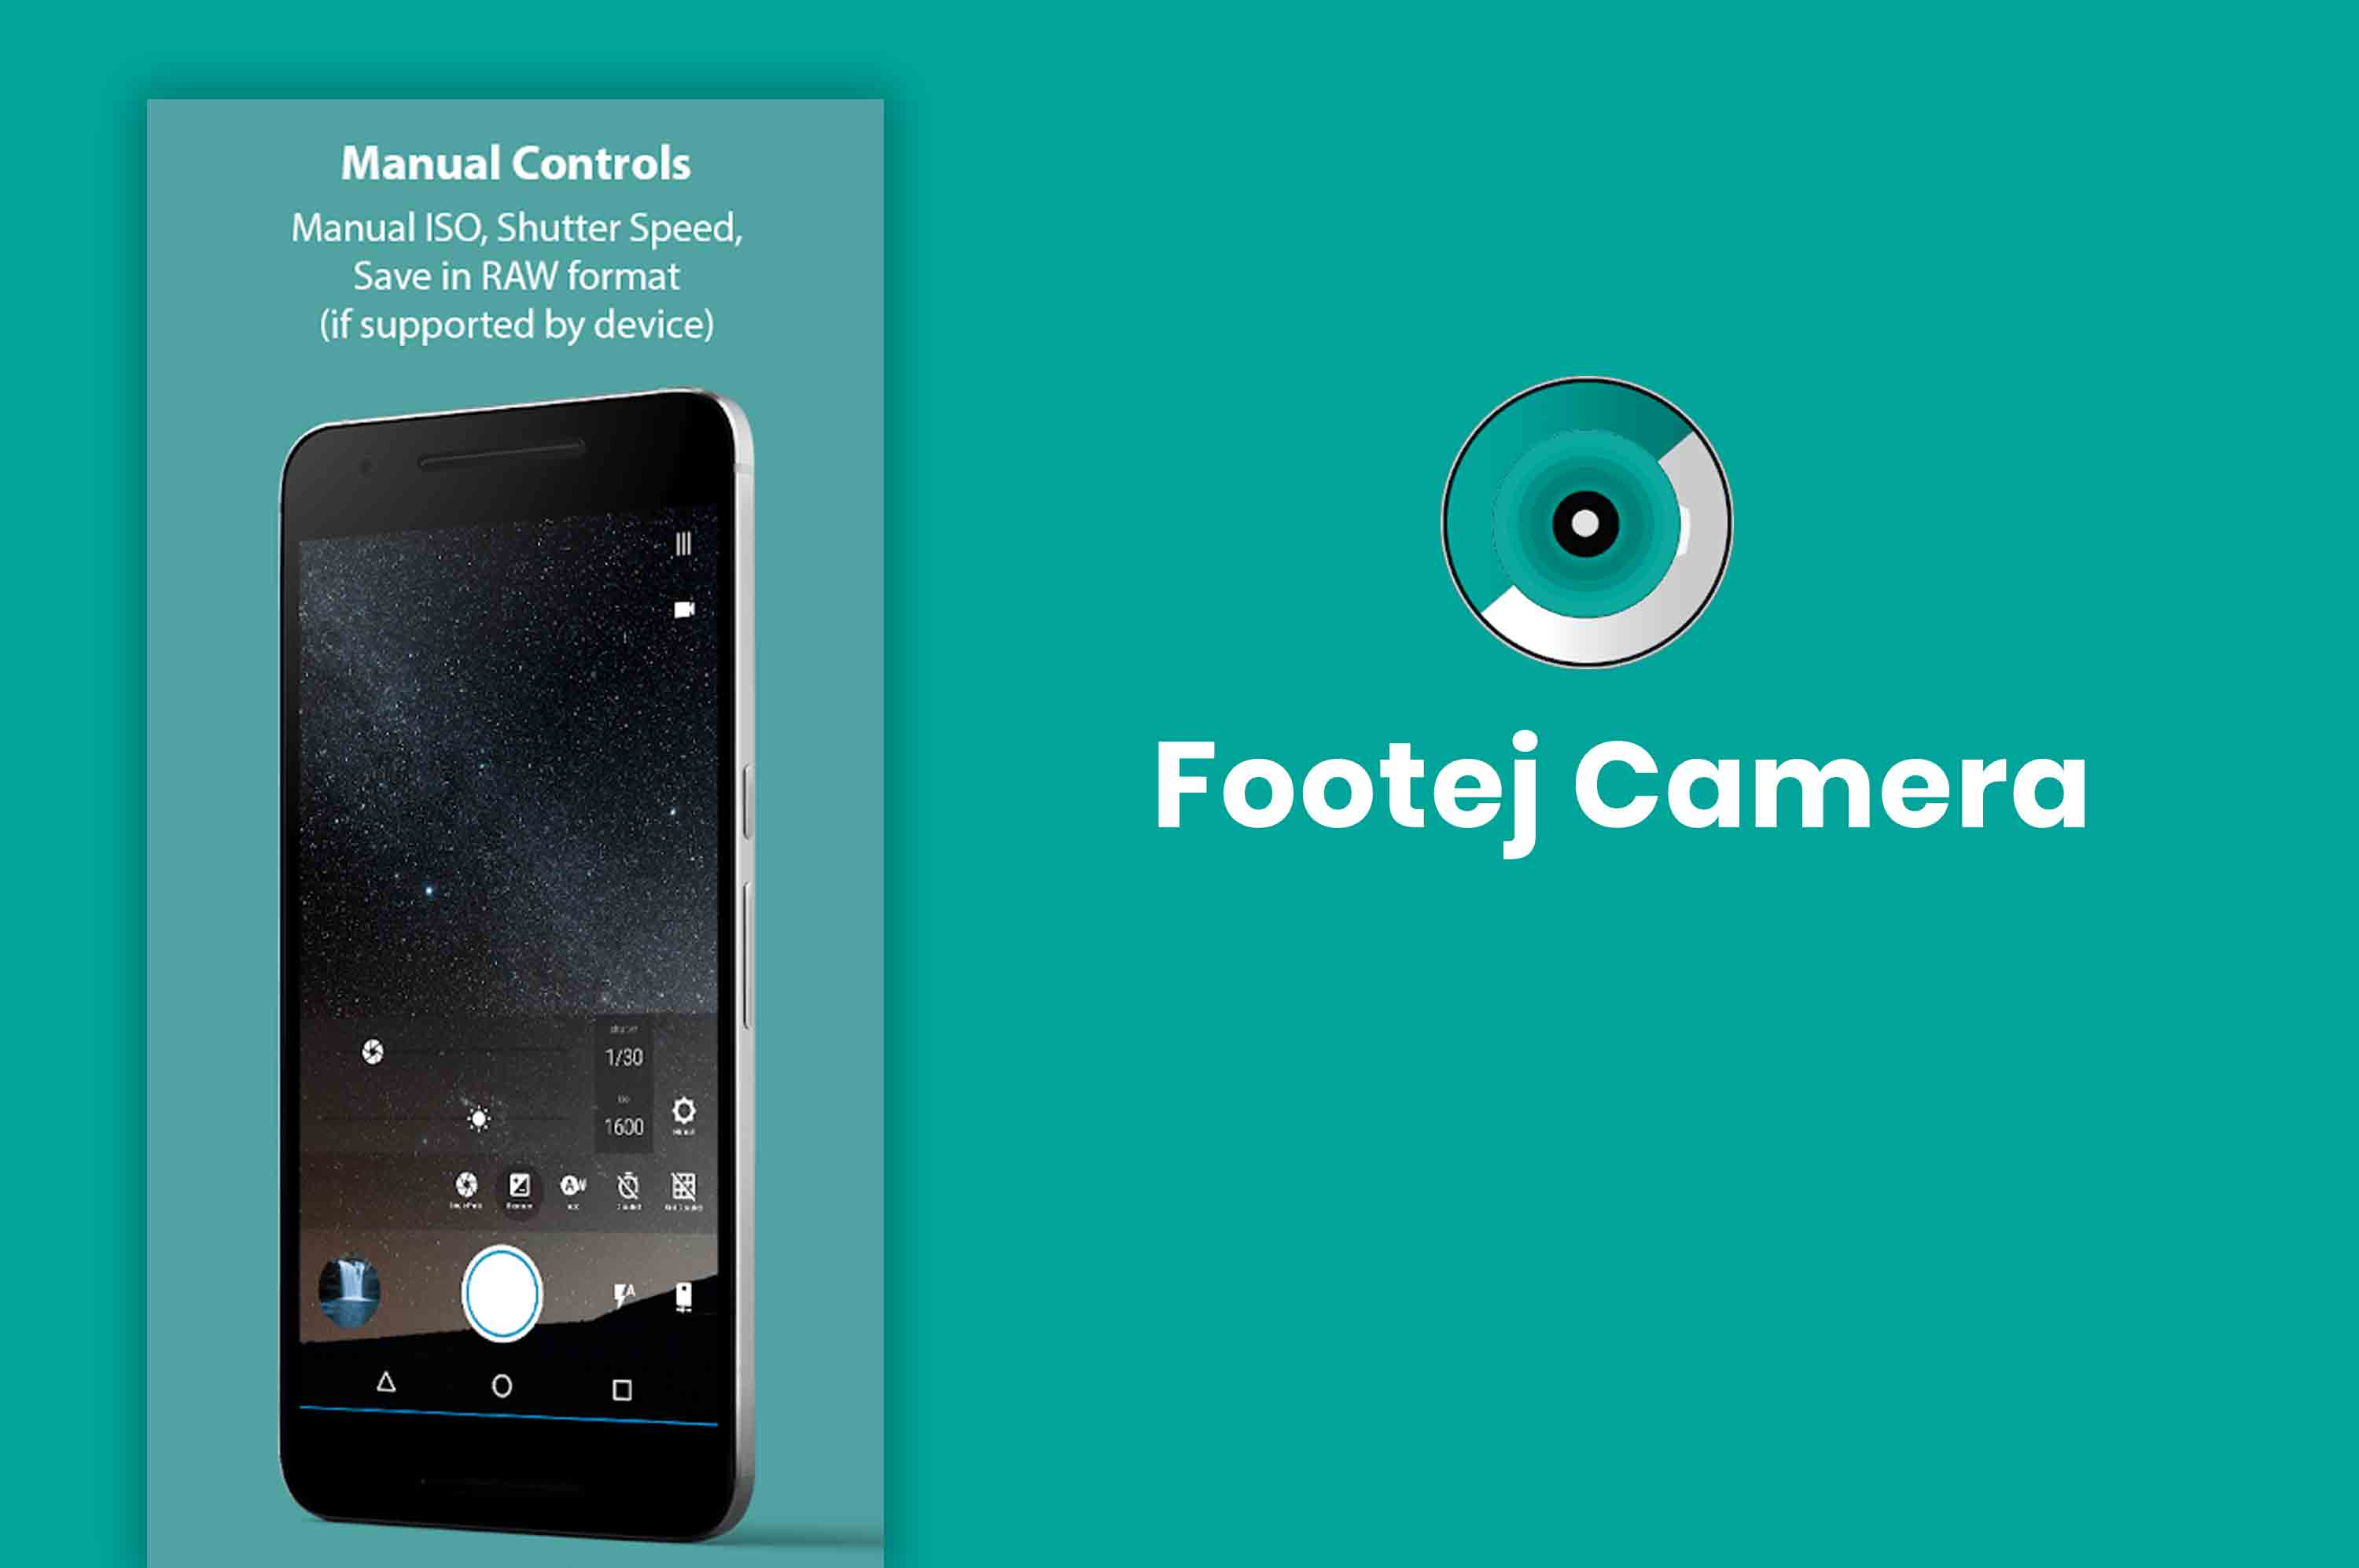 a smartphone with footej camera capturing image of a sky